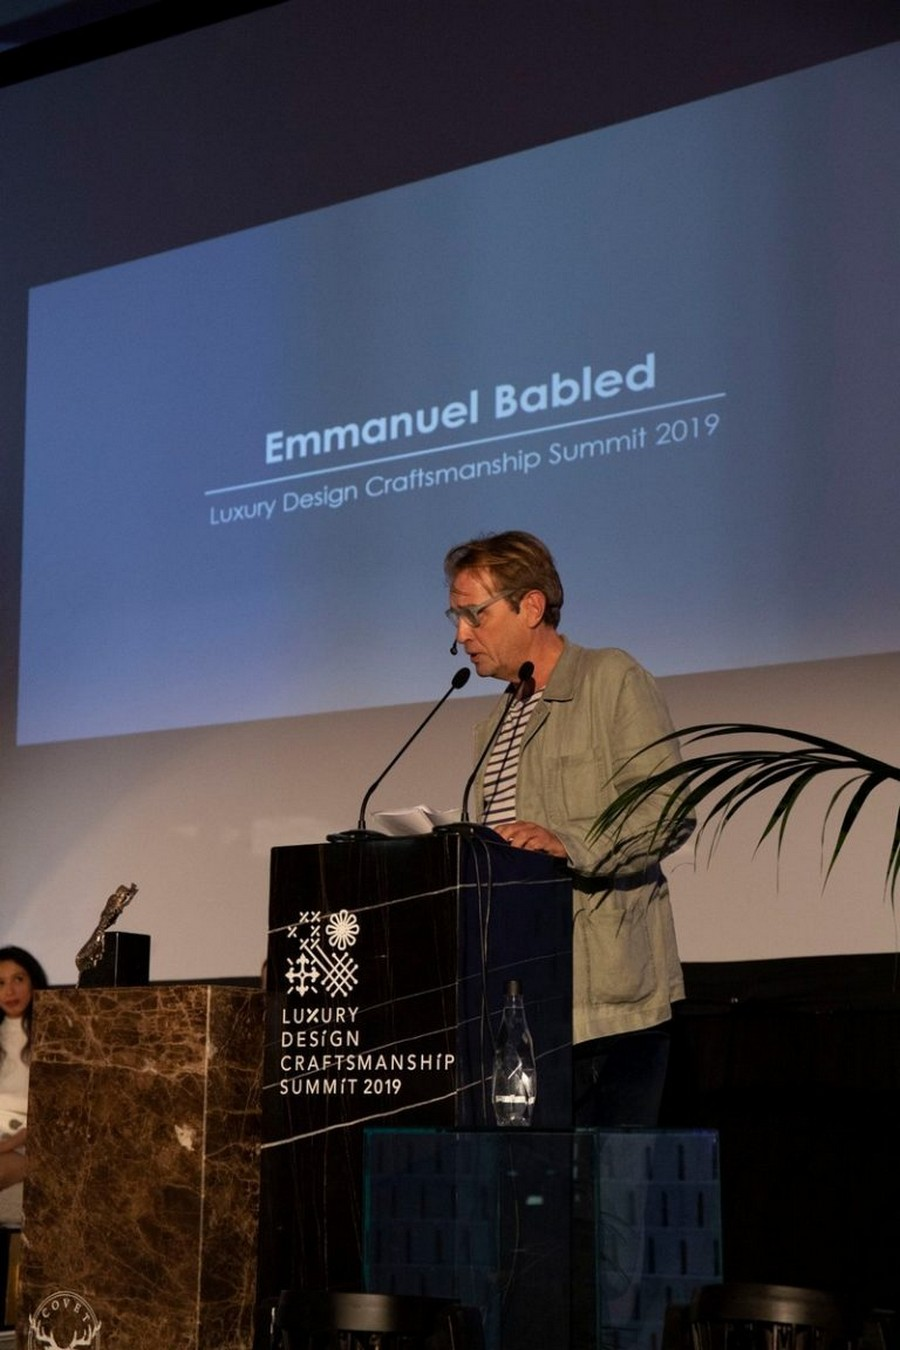 Emmanuel Babled a French Designer who worked in Italy and Portugal emmanuel babled Emmanuel Babled: a French Designer who worked in Italy and Portugal Emmanuel Babled a French Designer who worked in Italy and Portugal 1